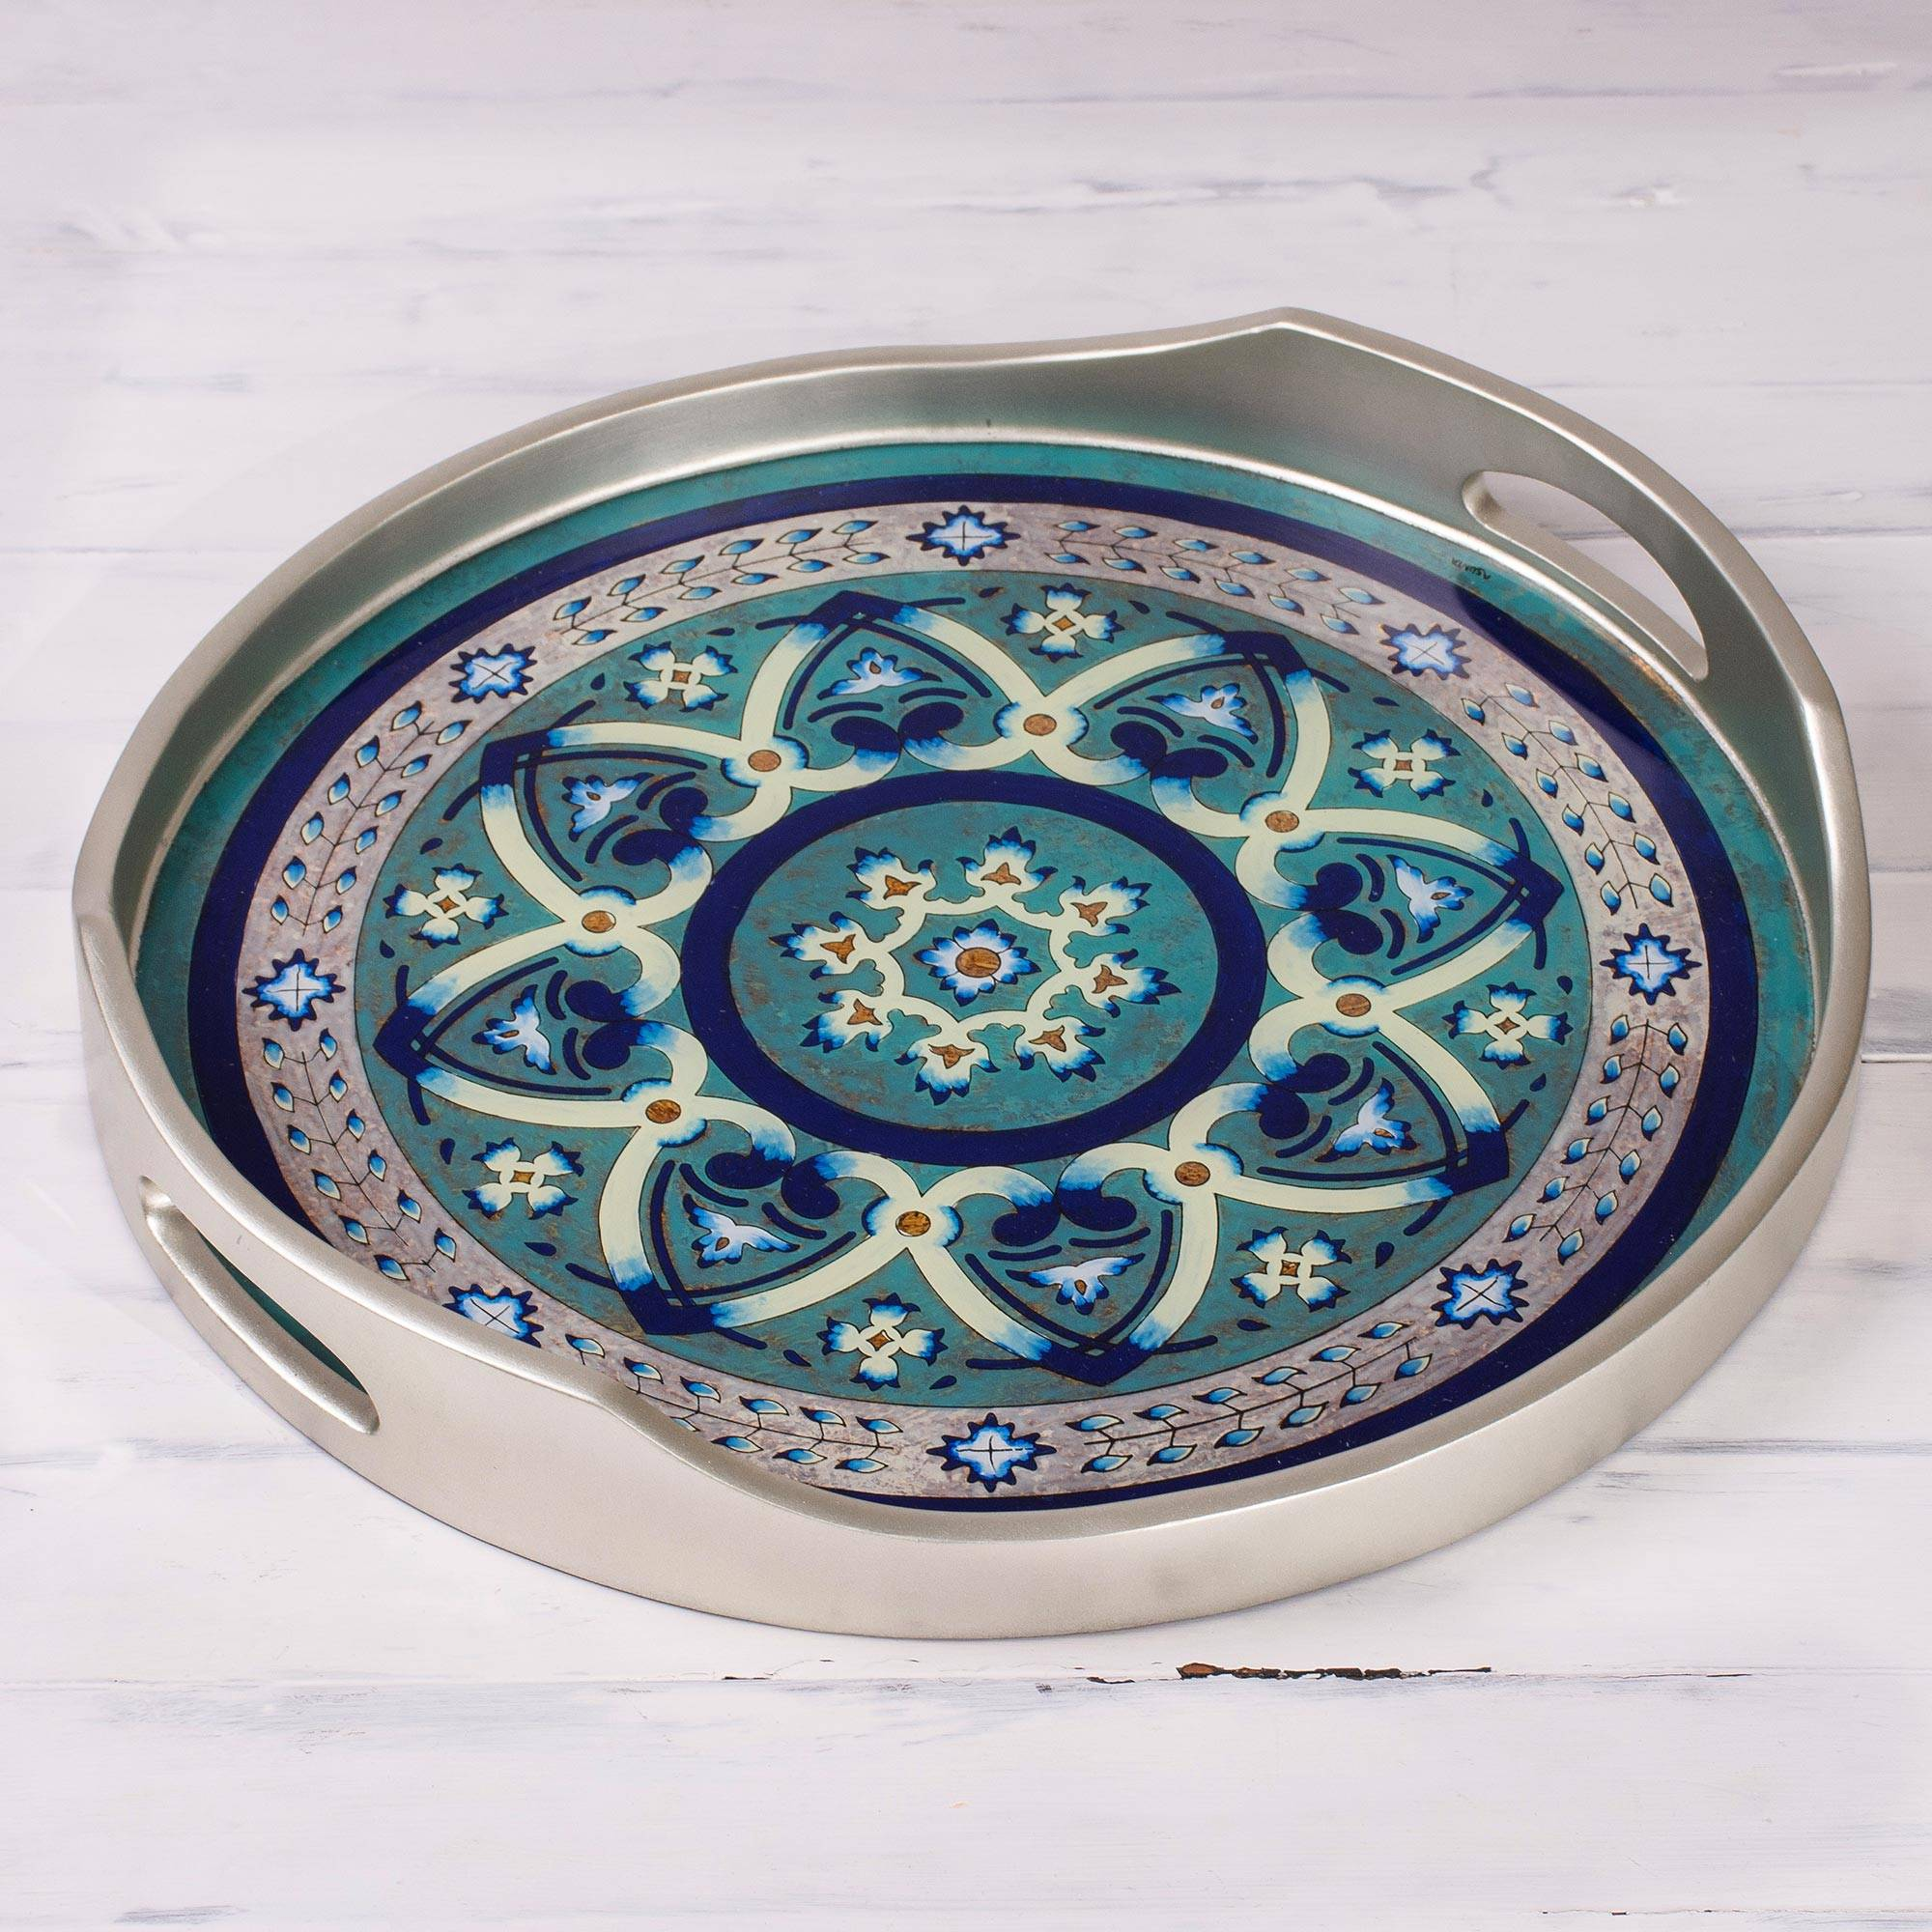 Floral Intricacy in Silver Silver-Tone Reverse-Painted Glass Tray from Peru